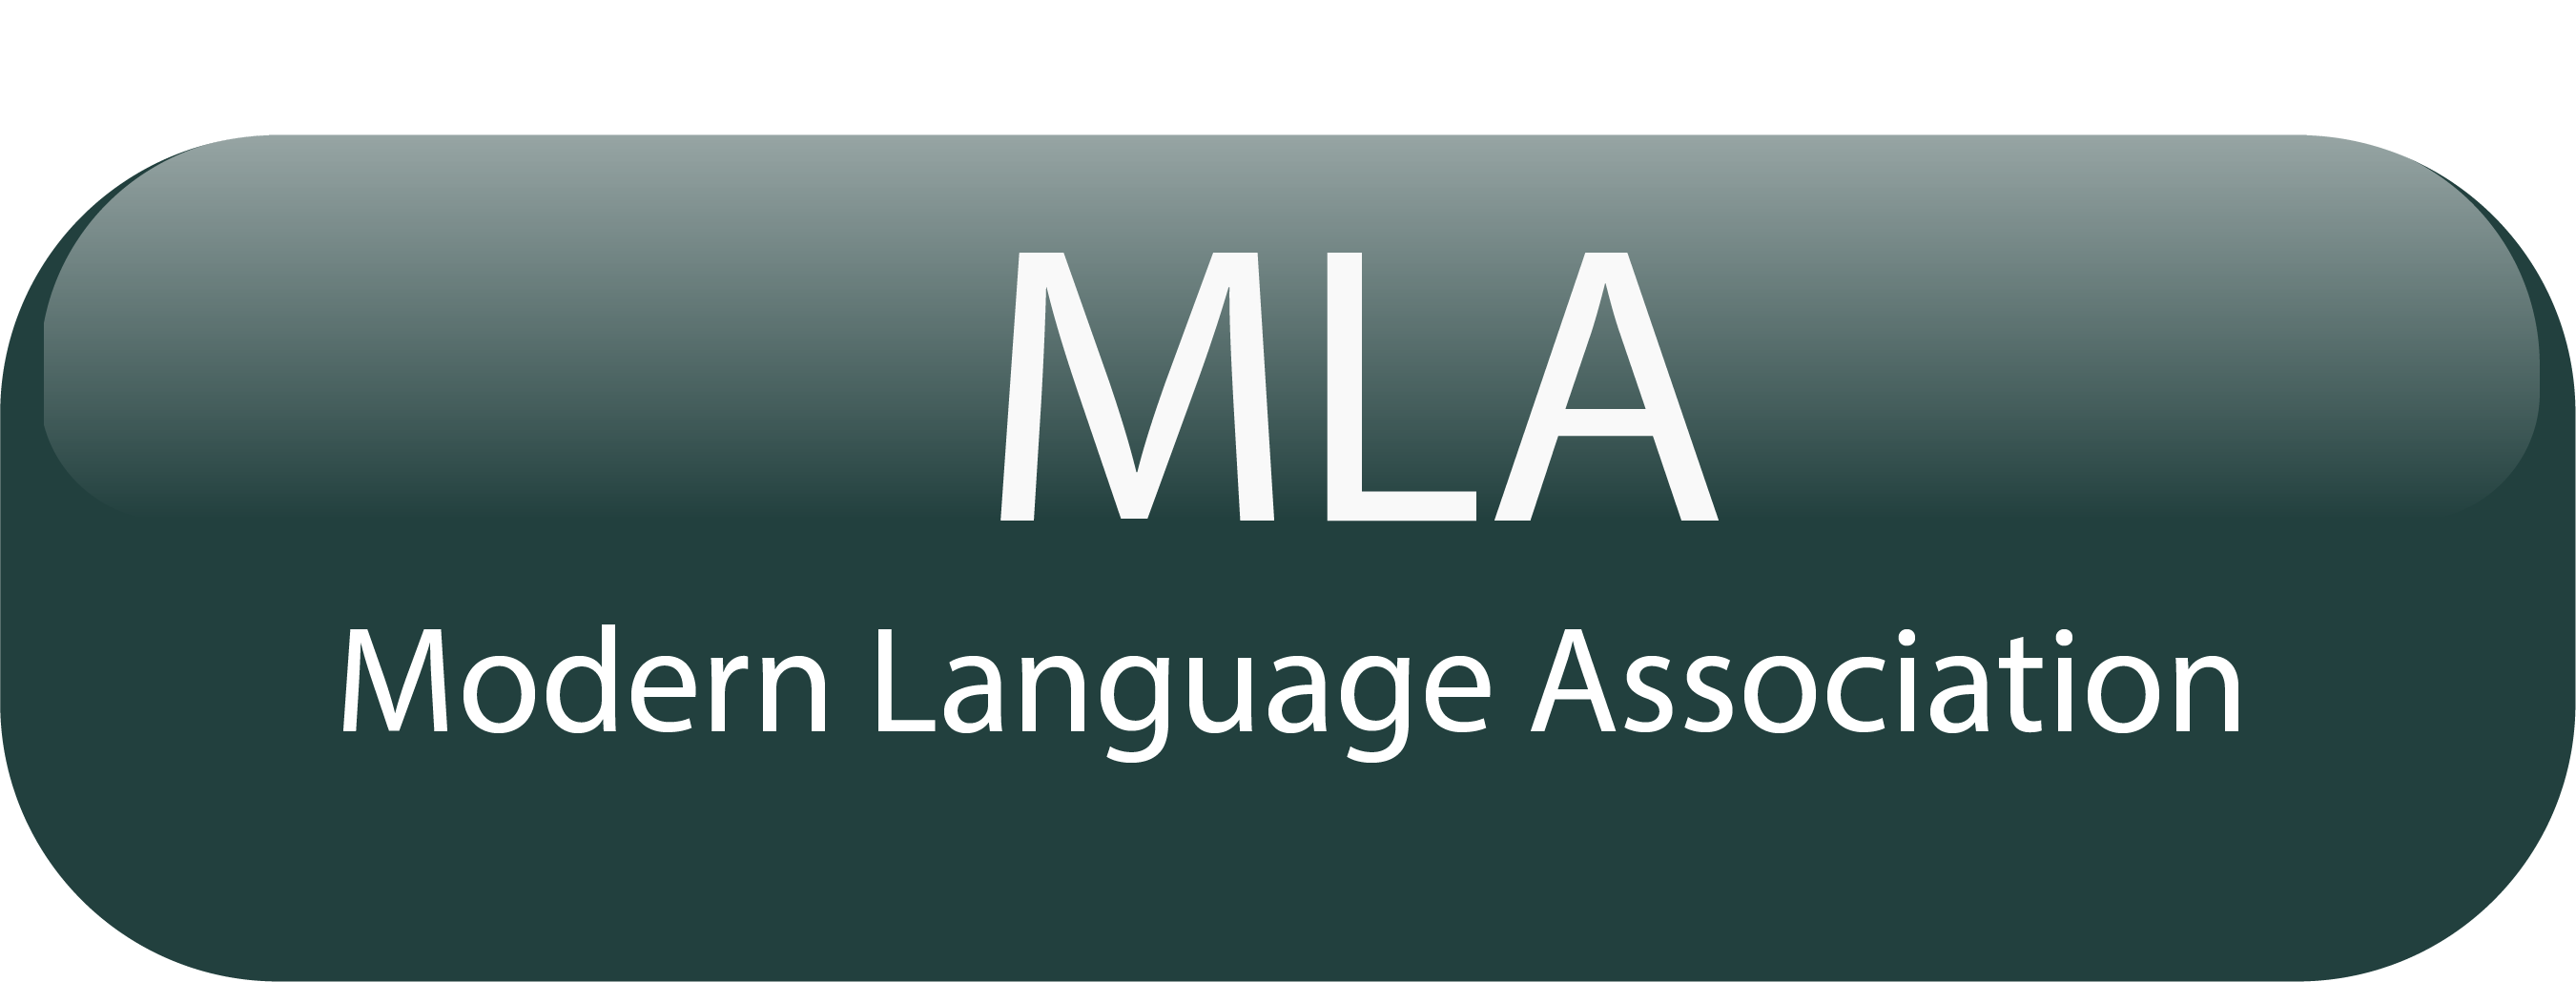 MLA button